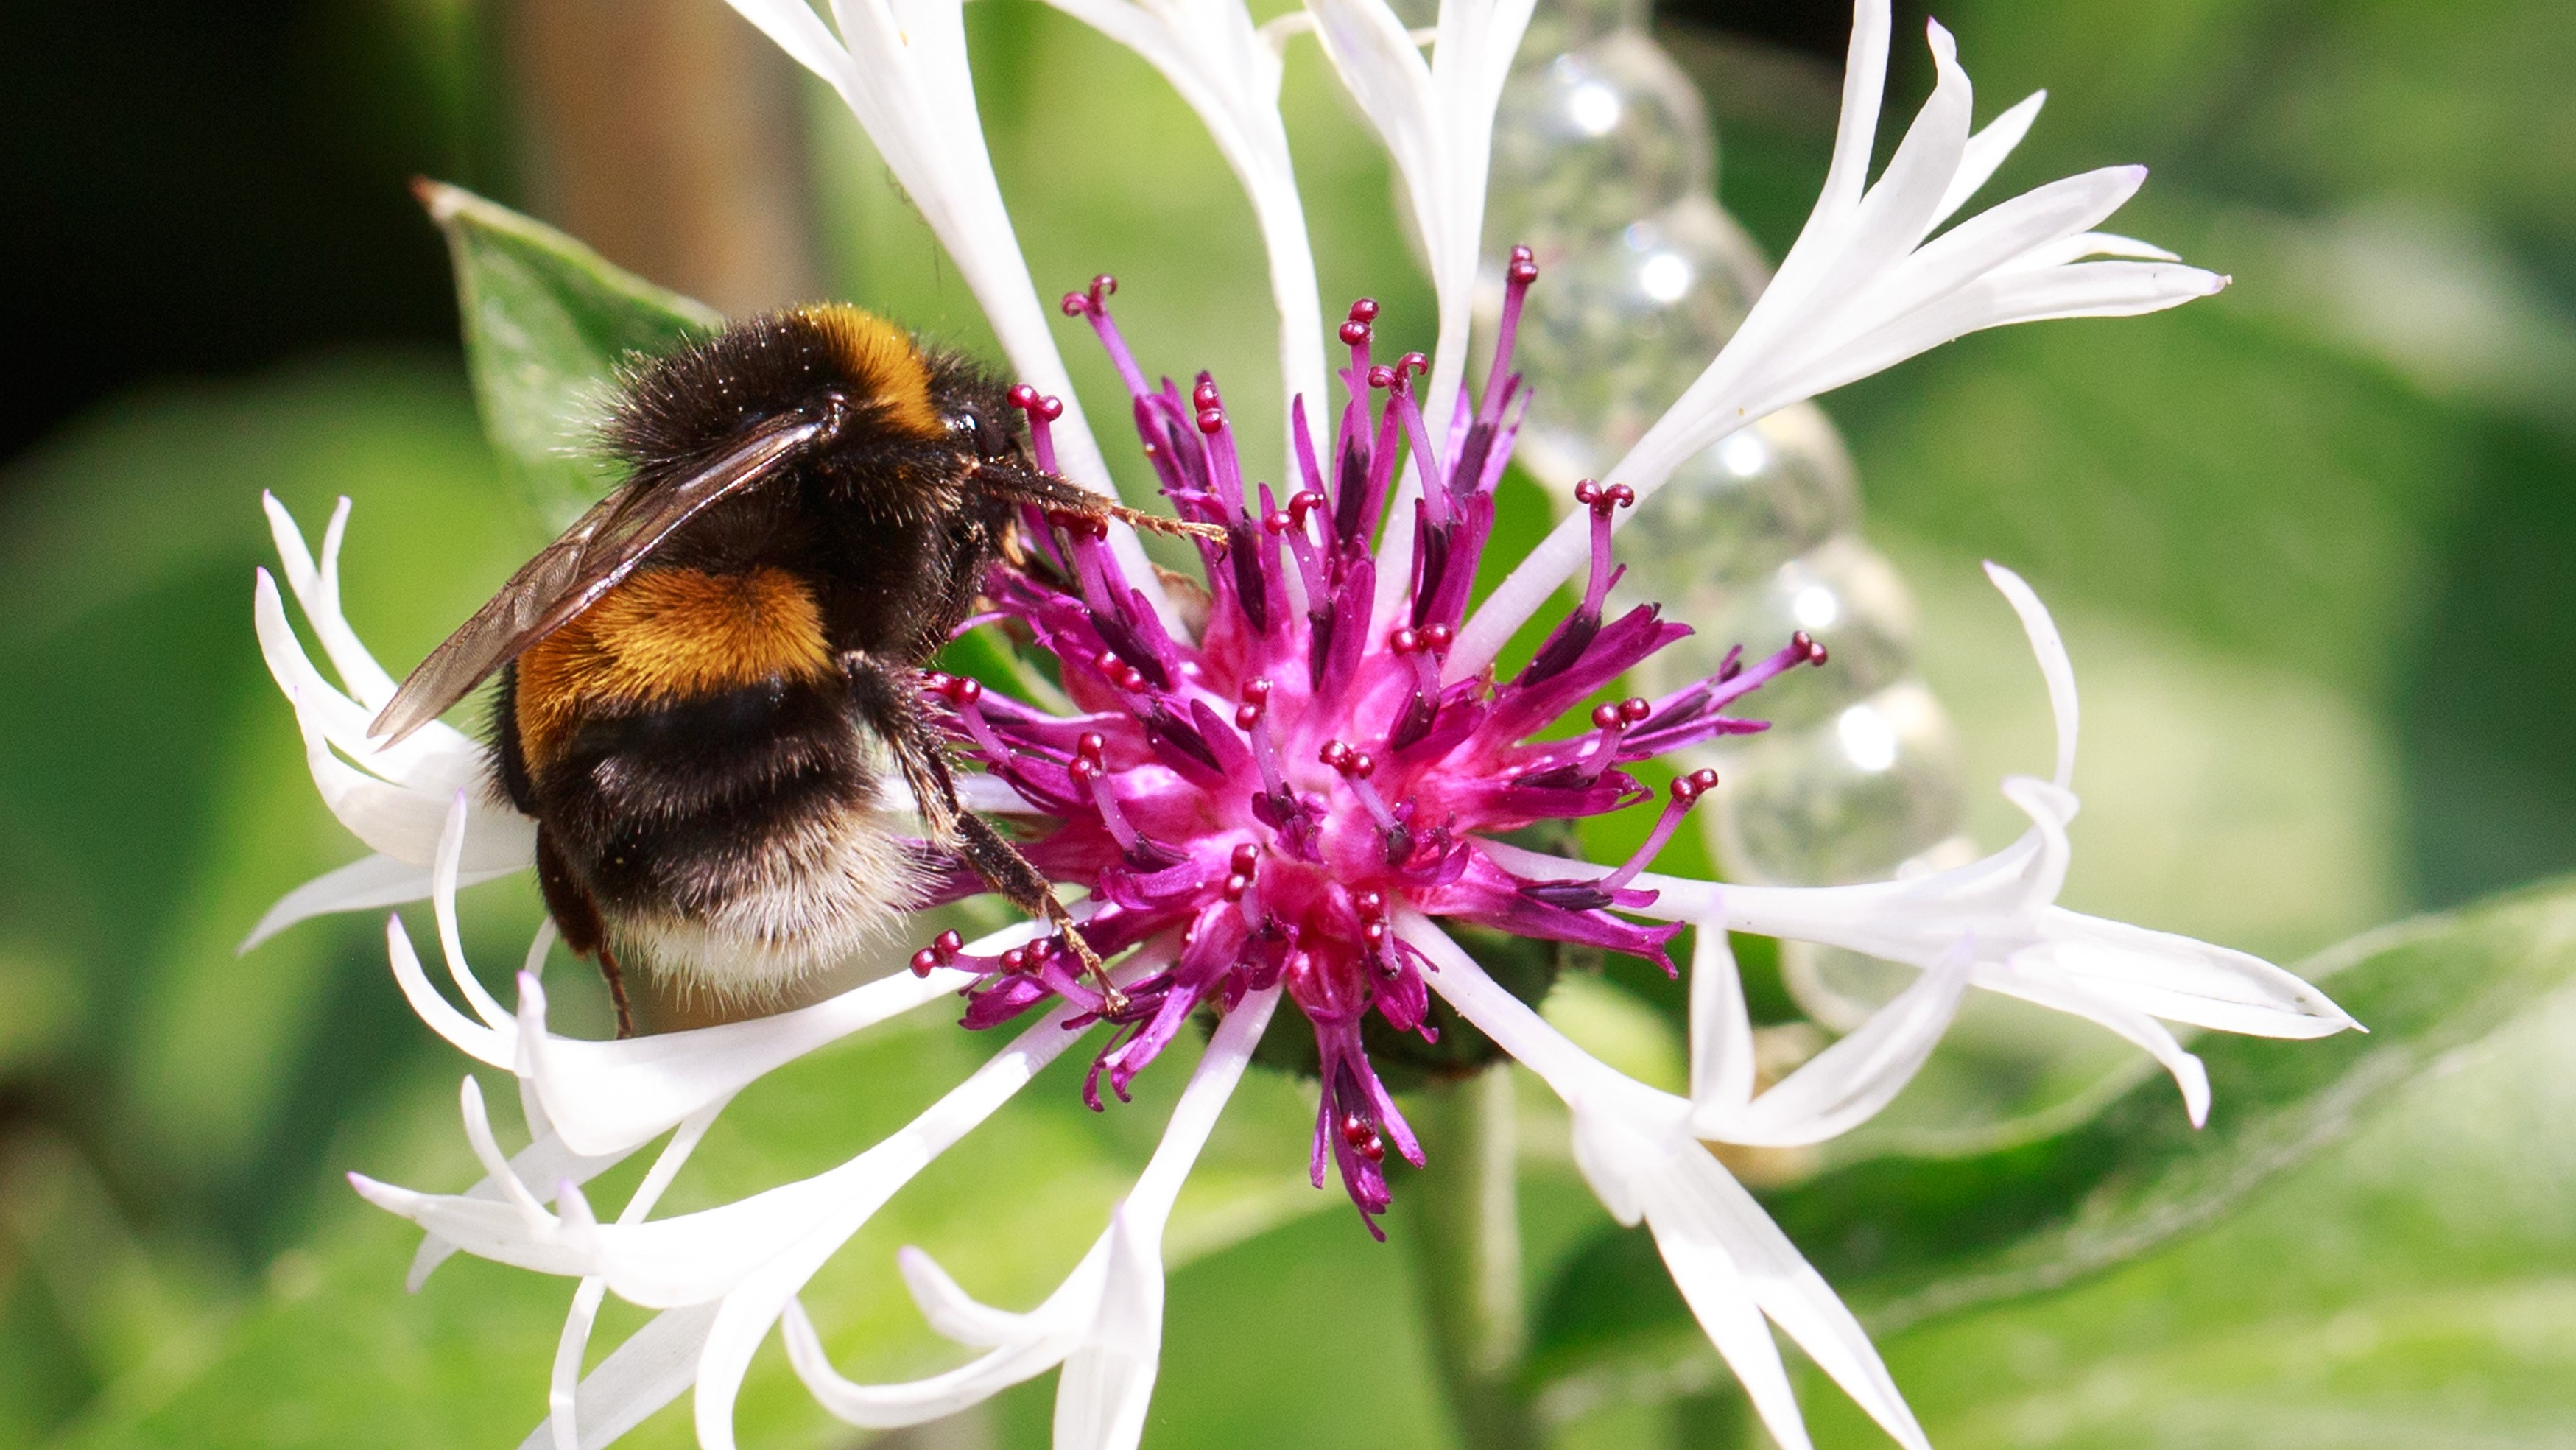 Attract Bees - Attract bumble bees - Buff Tailed Bumble bee